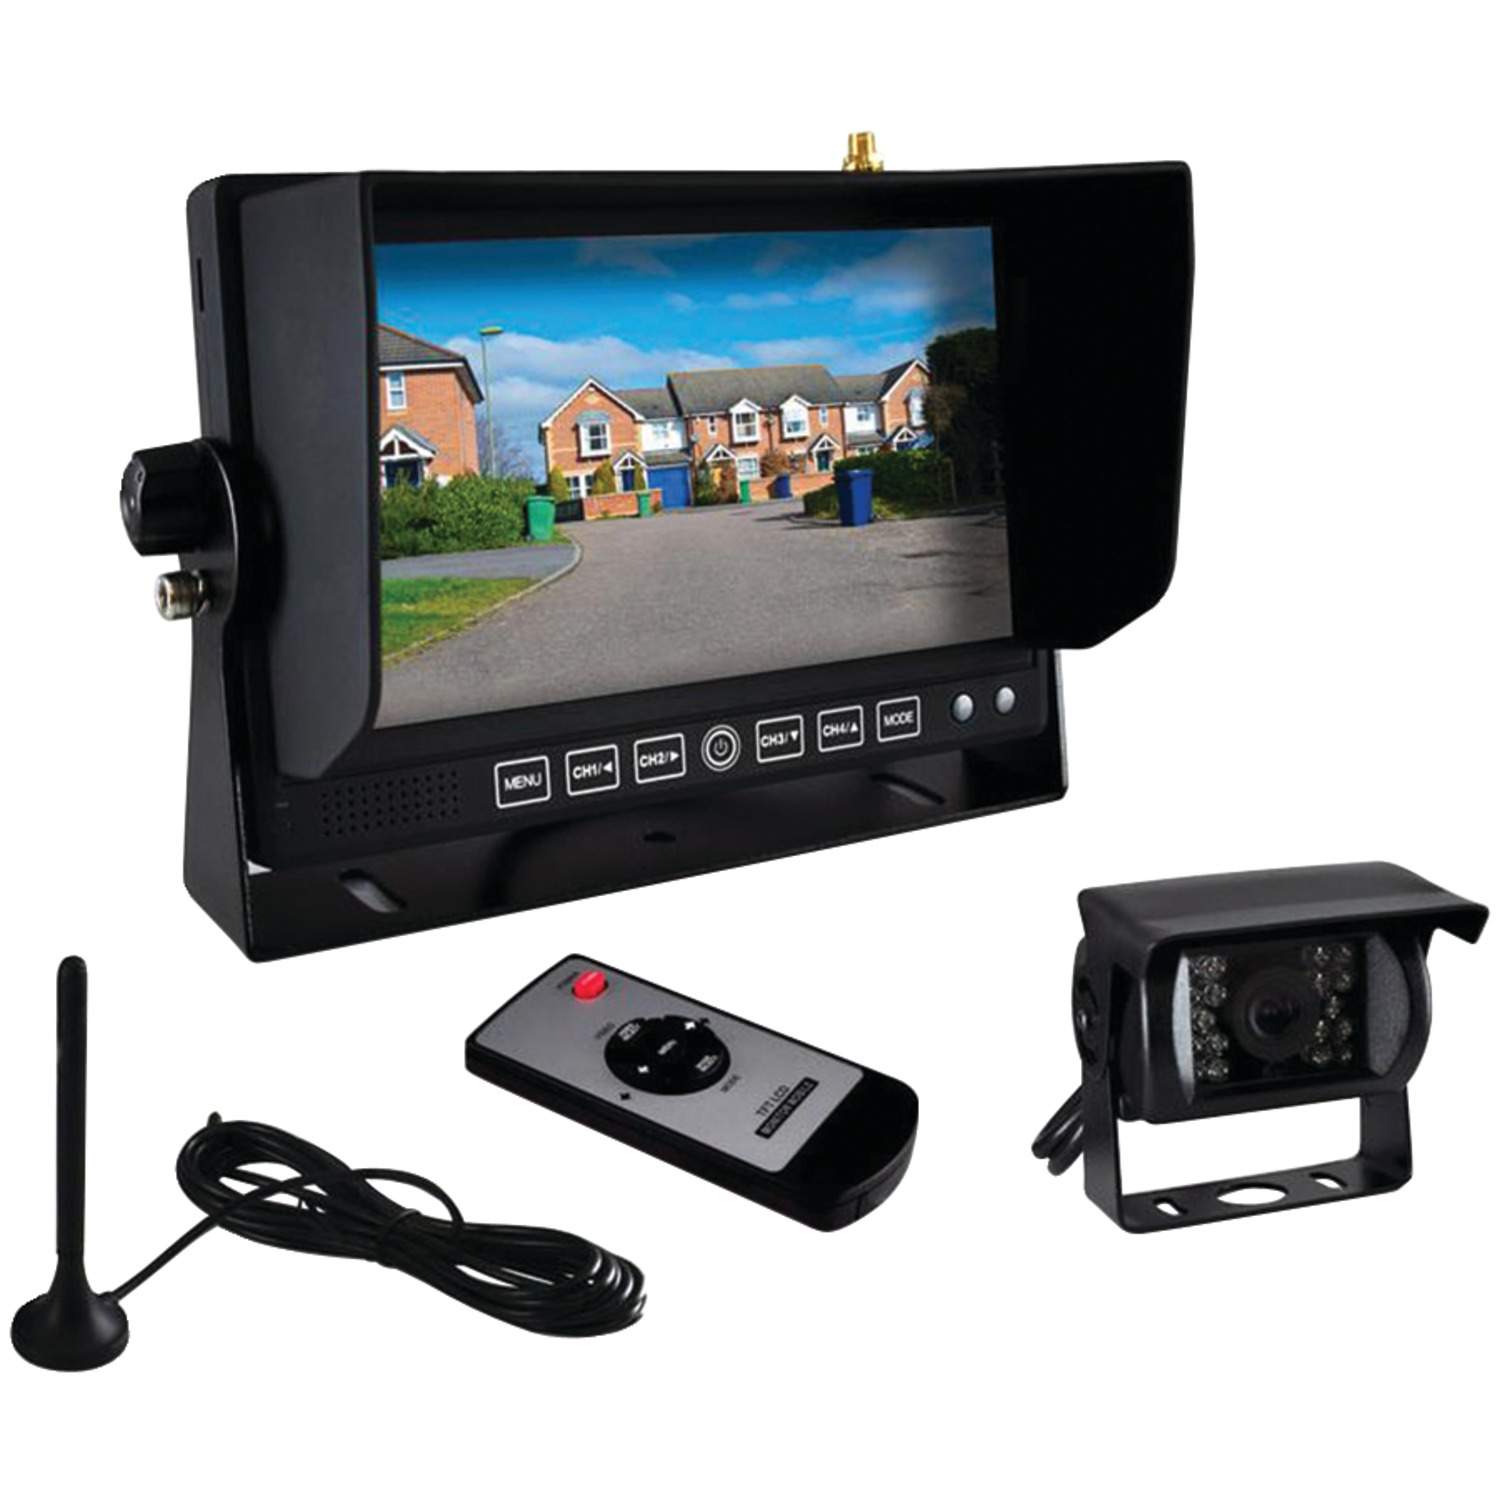 pyle� plcm7700 rear view backup camera and monitor system